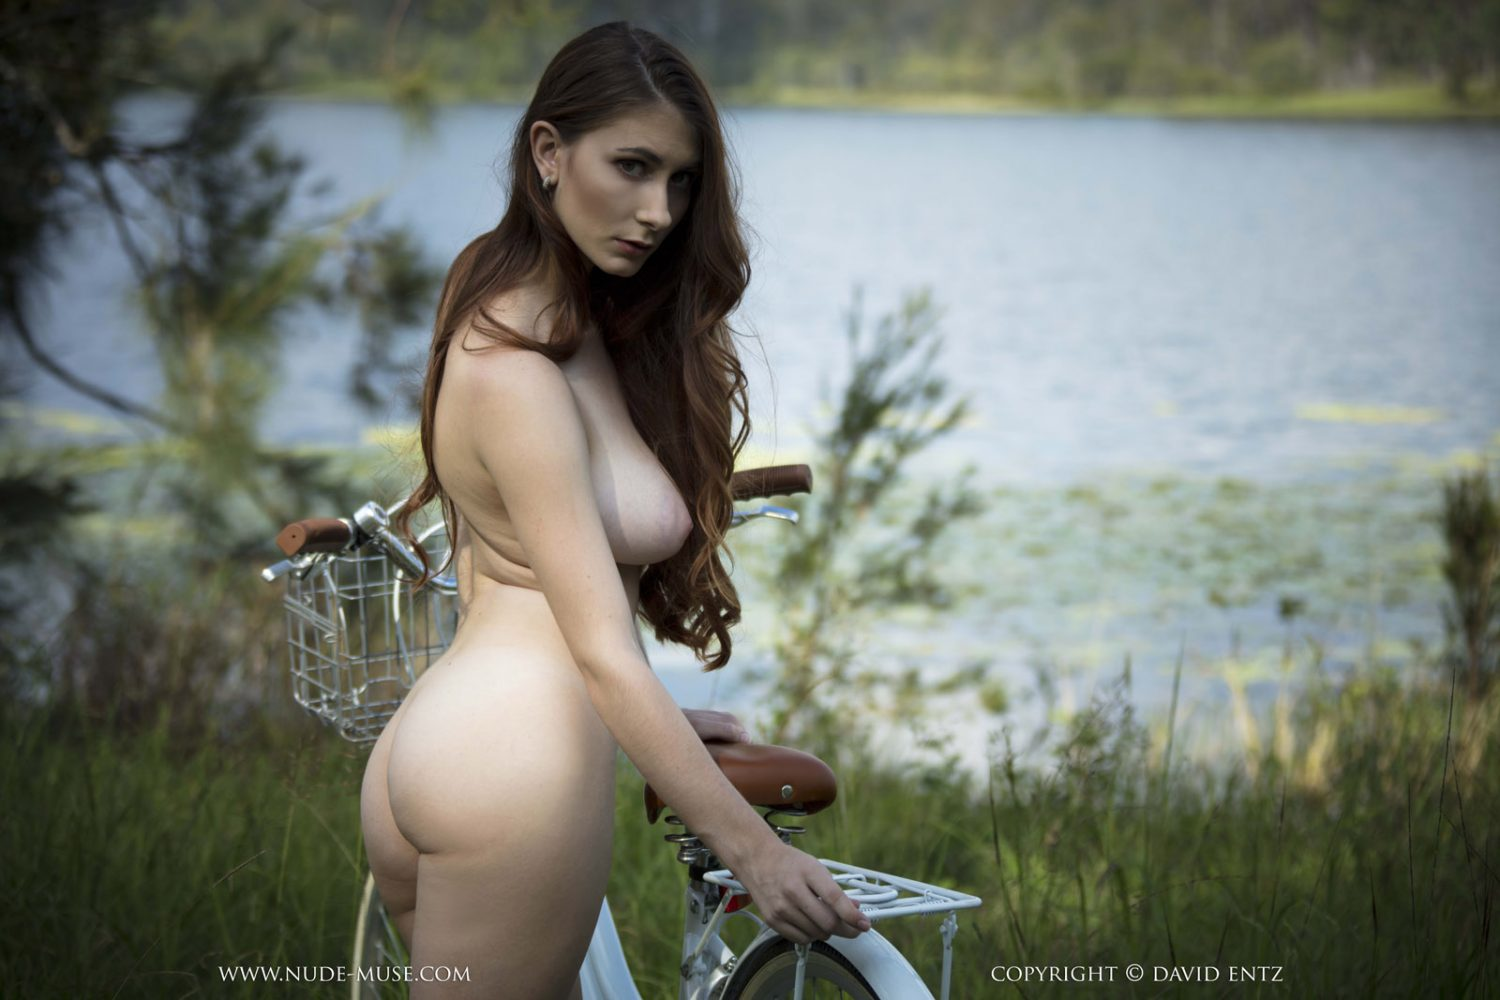 Penni Country Ride Nude Muse